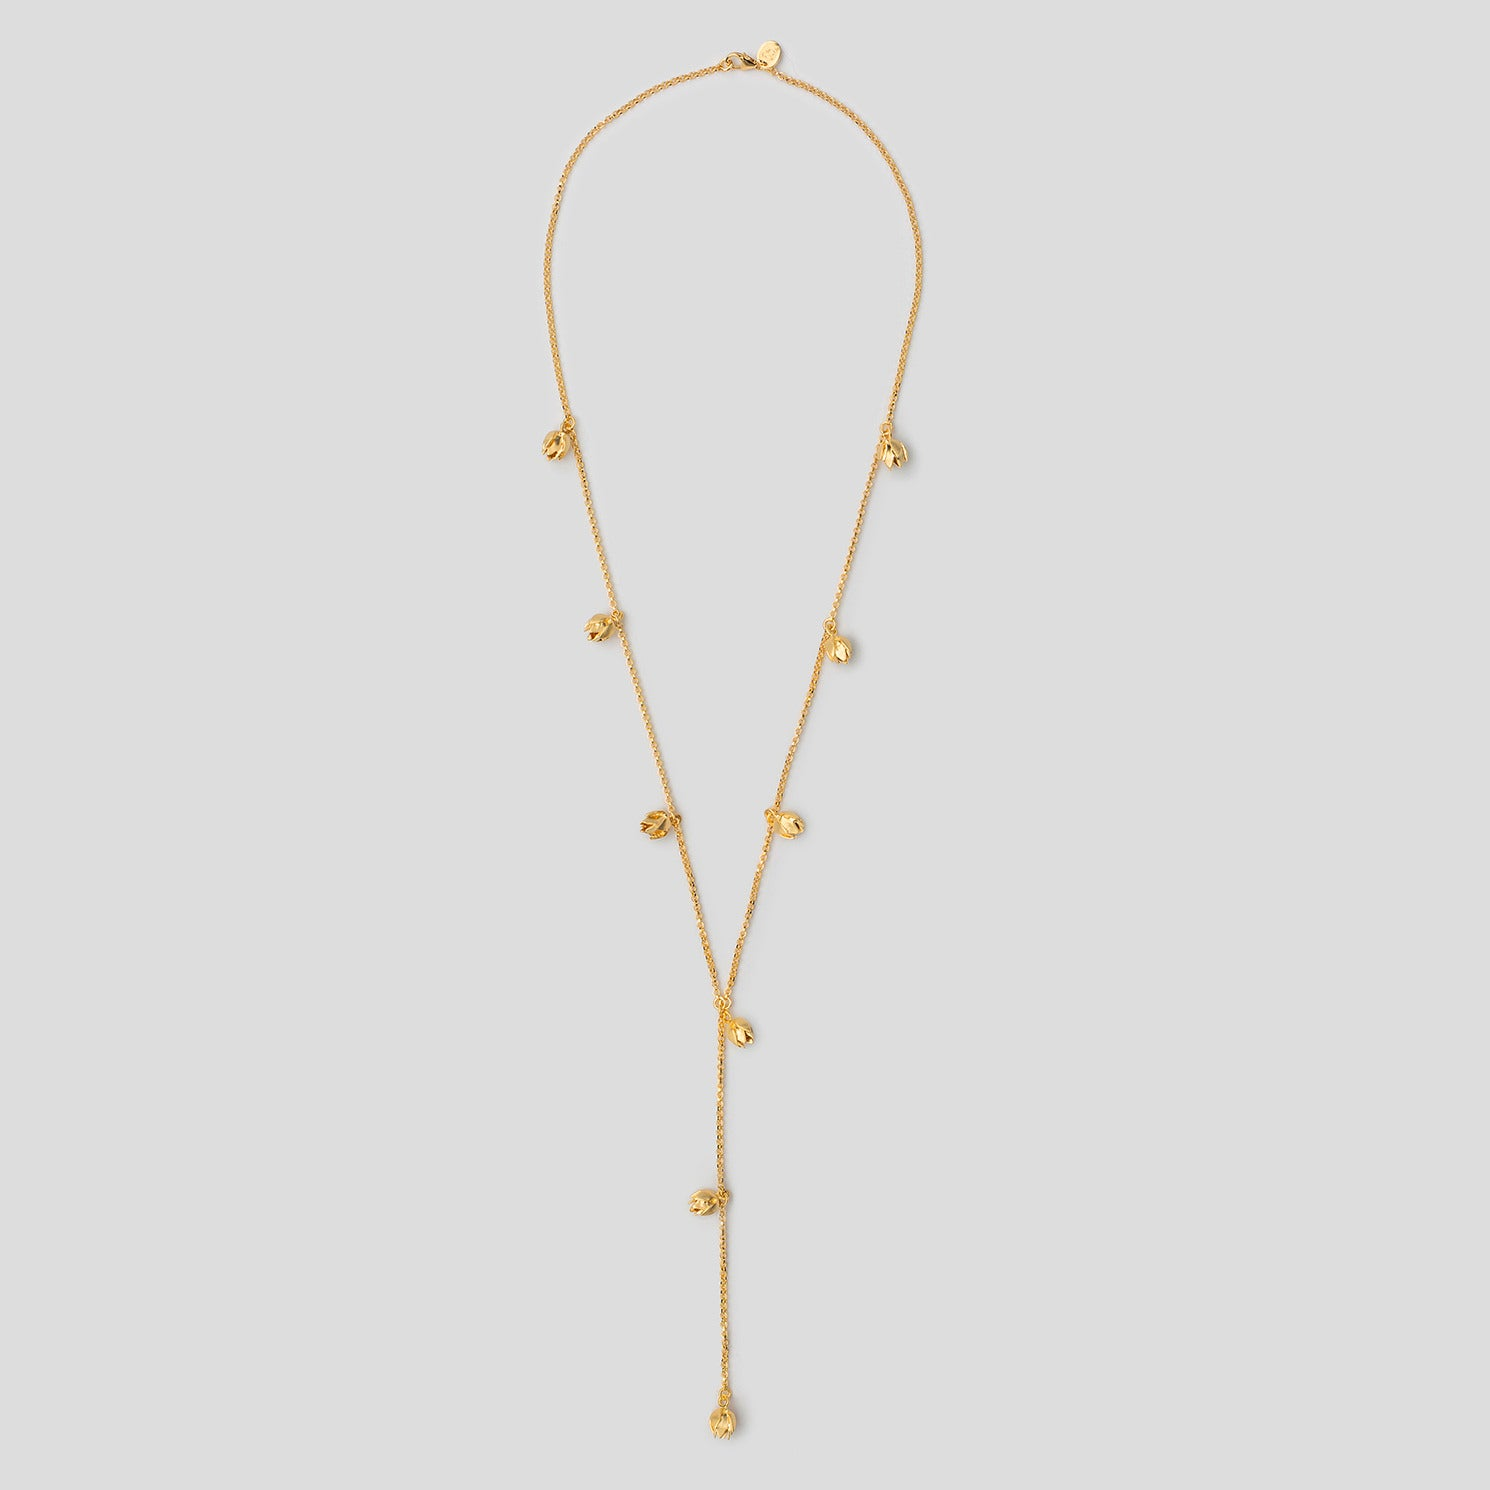 Gold lotus bud lariat necklace on white background